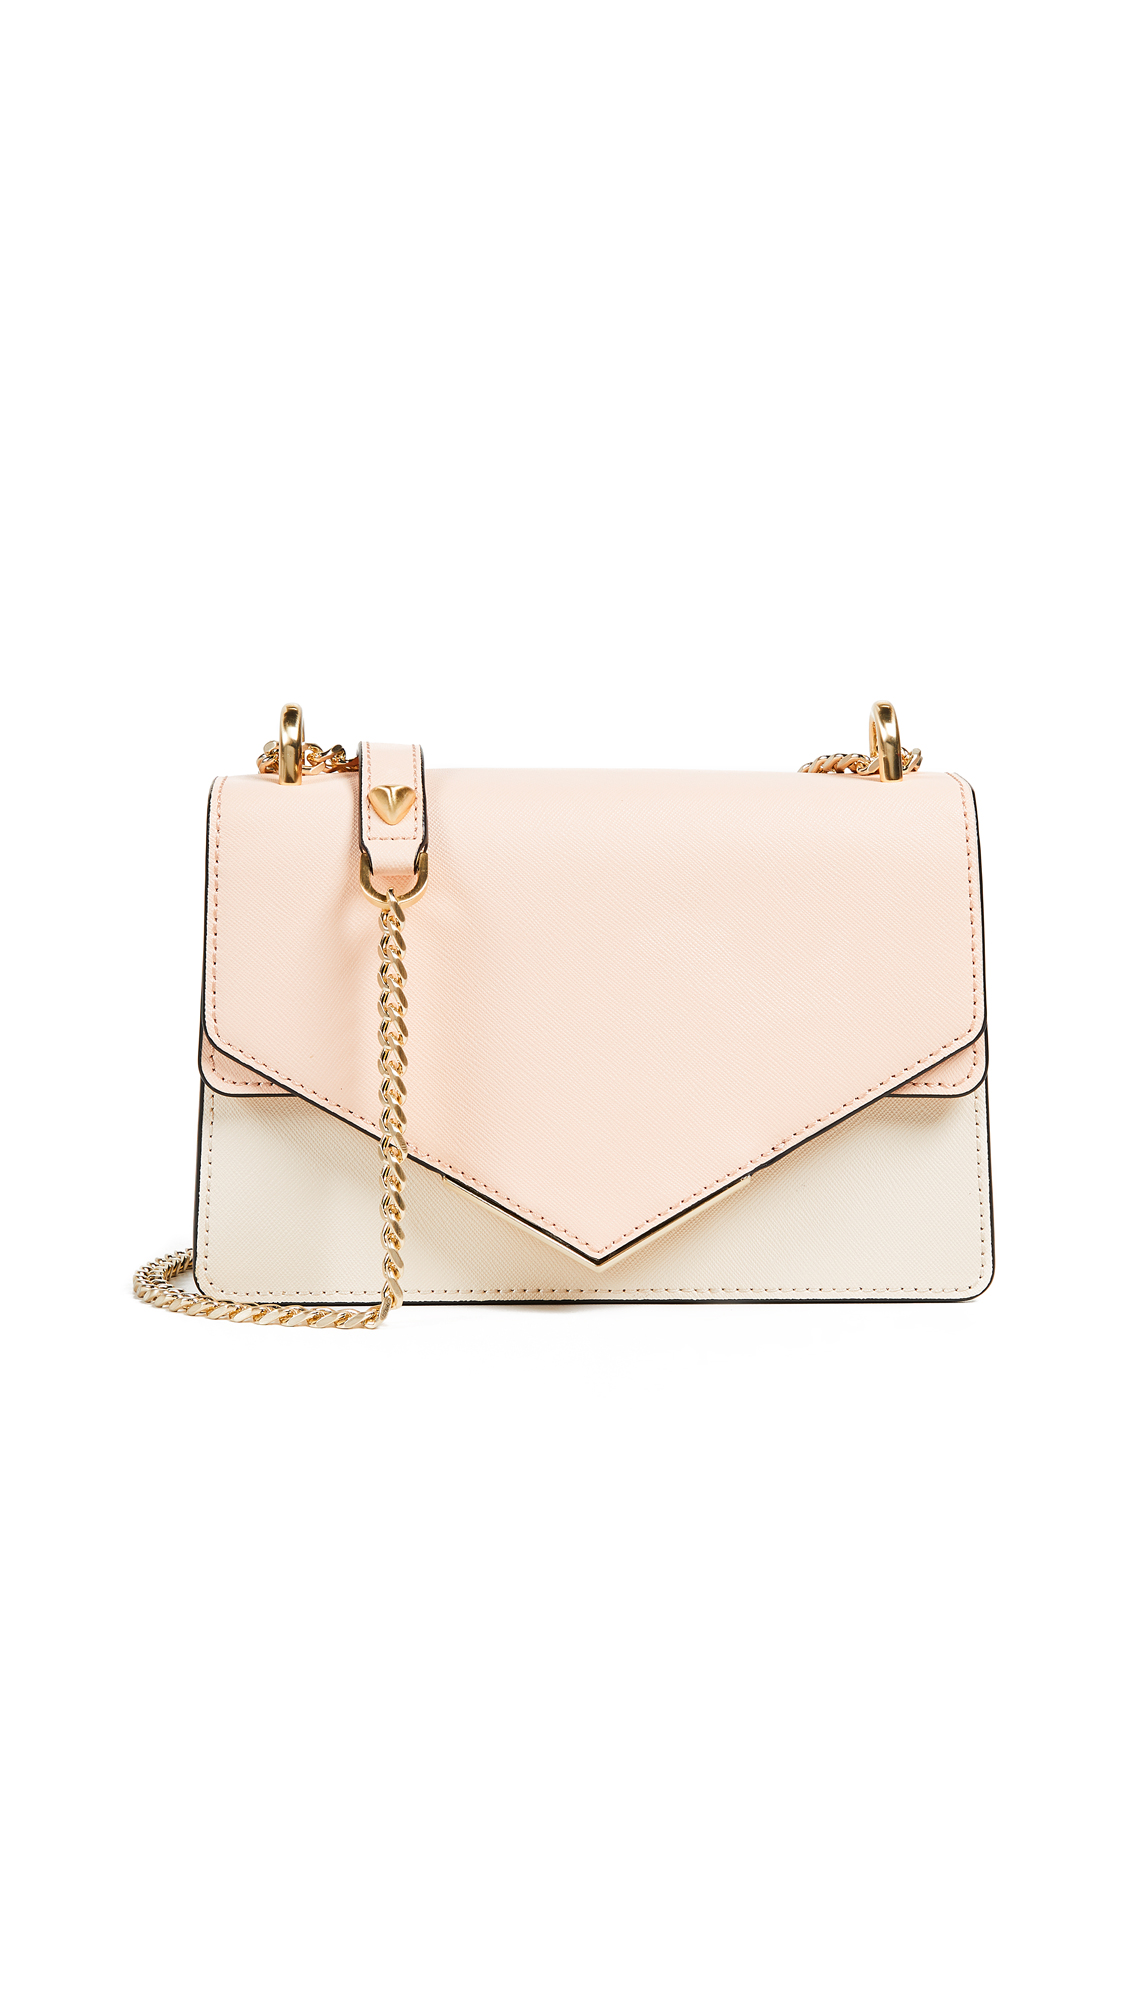 Clearance Store Online Cooper Small Cross Body Bag Botkier Ebay Sale Online Factory Outlet For Sale gRLWEQ6w